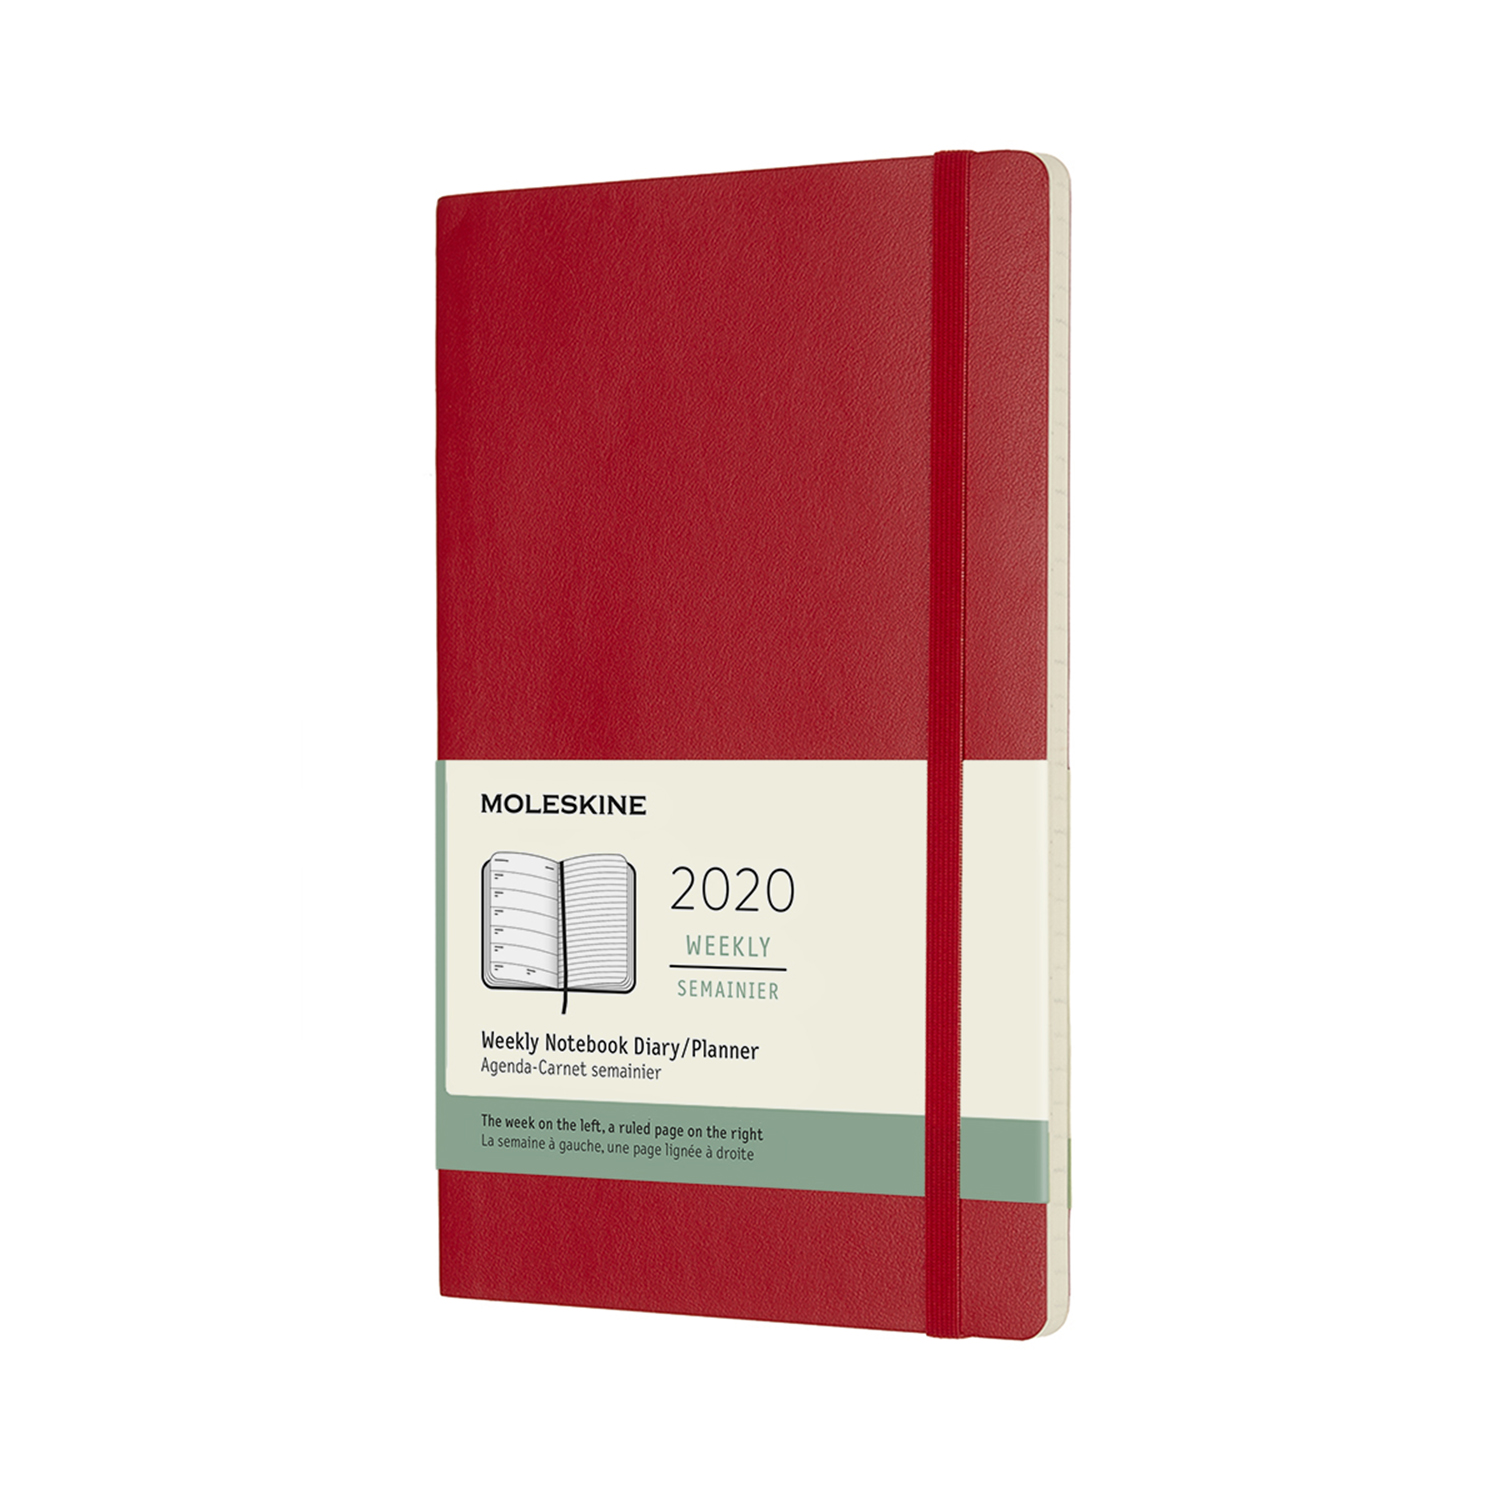 SCARLET RED WEEKLY LARGE SOFTCOVER 2020 DIARY